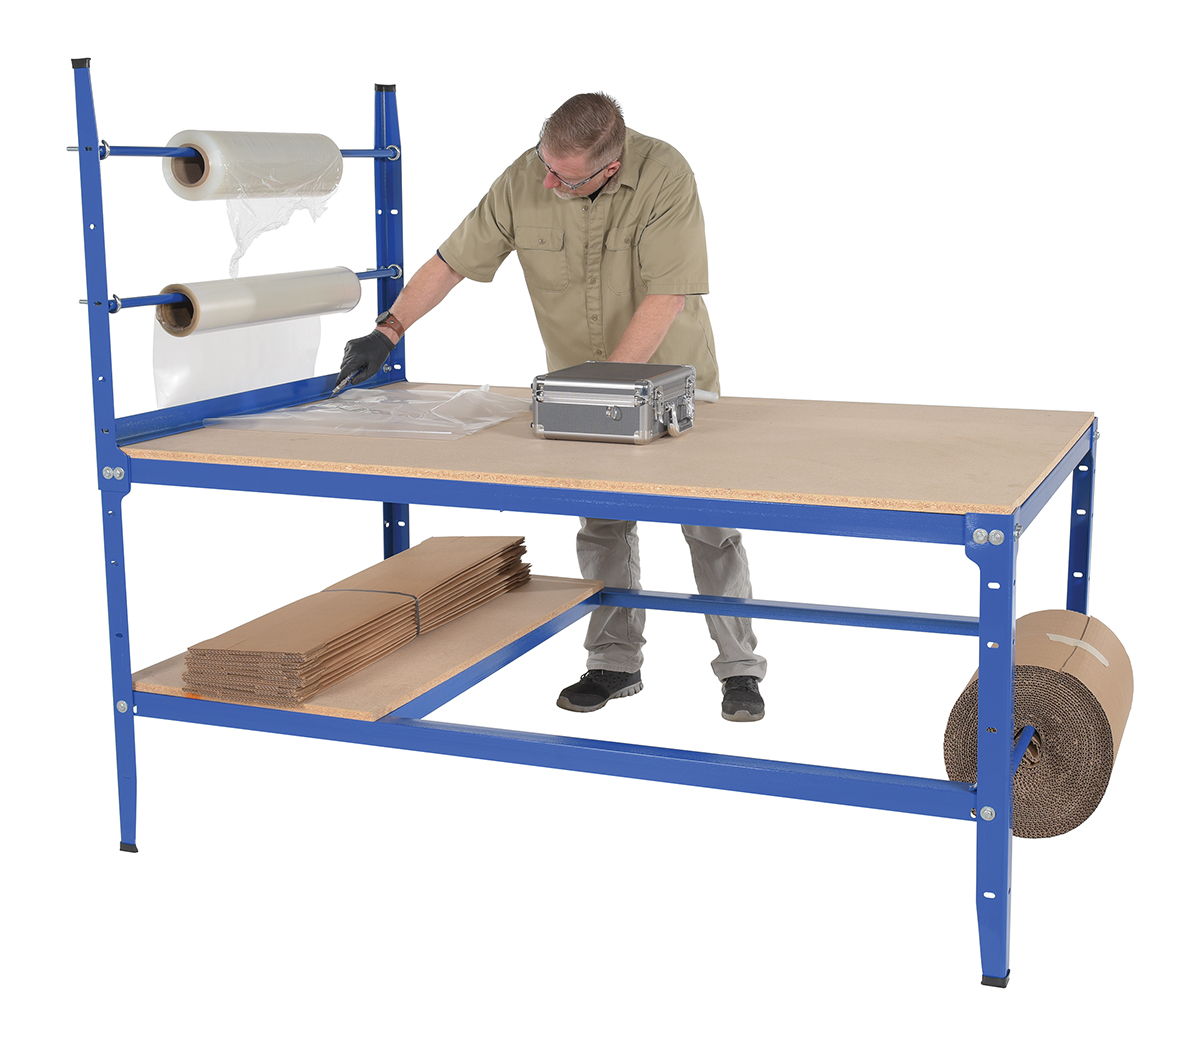 Vestil MPPB-4794 Multi-Purpose Packaging Bench B